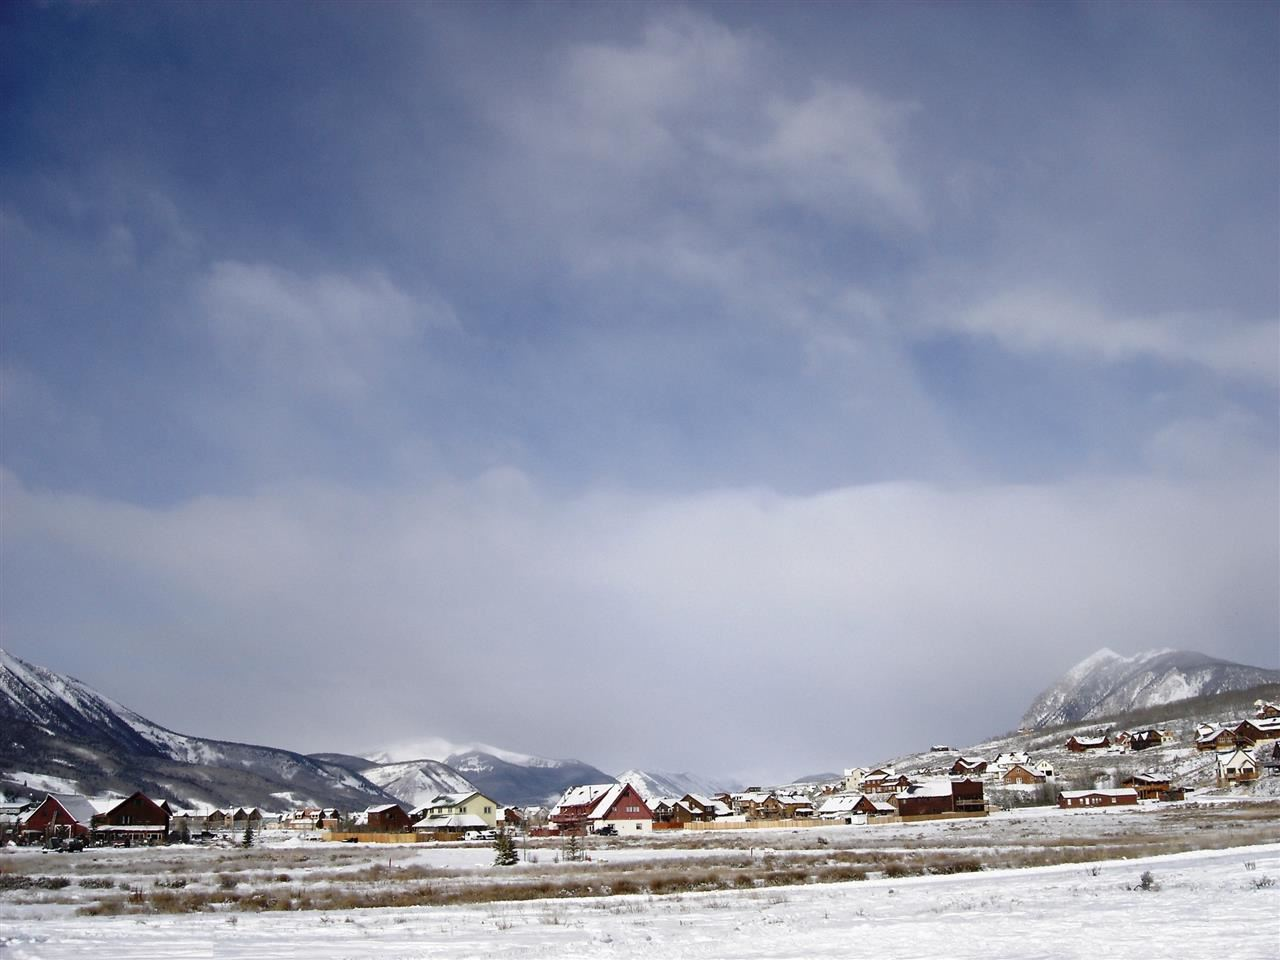 310 Elcho Ave, Crested Butte, CO 81224